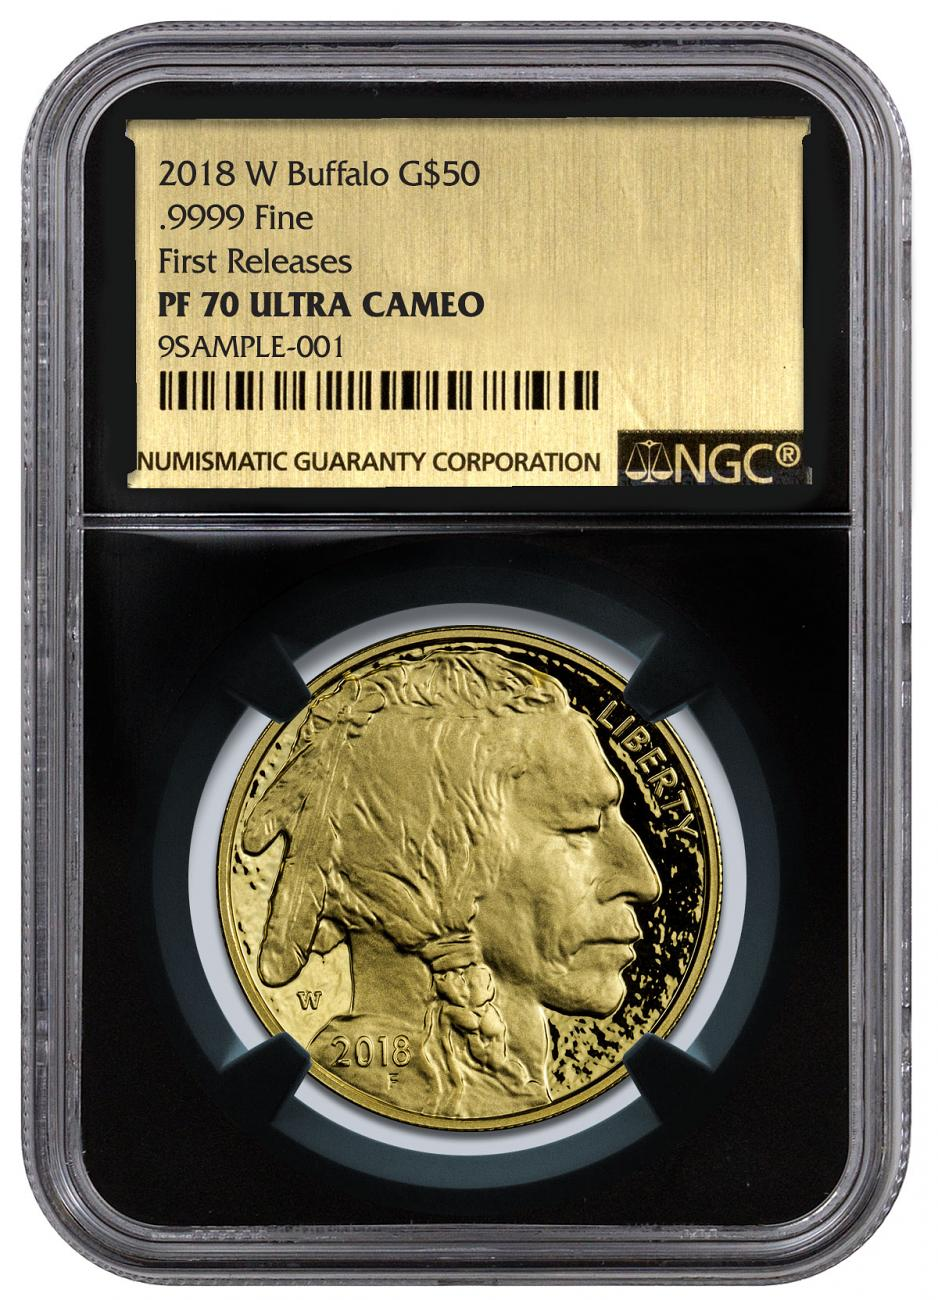 2018-W 1 oz Gold Buffalo Proof $50 Coin NGC PF70 UC FR Black Core Holder Exclusive Gold Foil Label